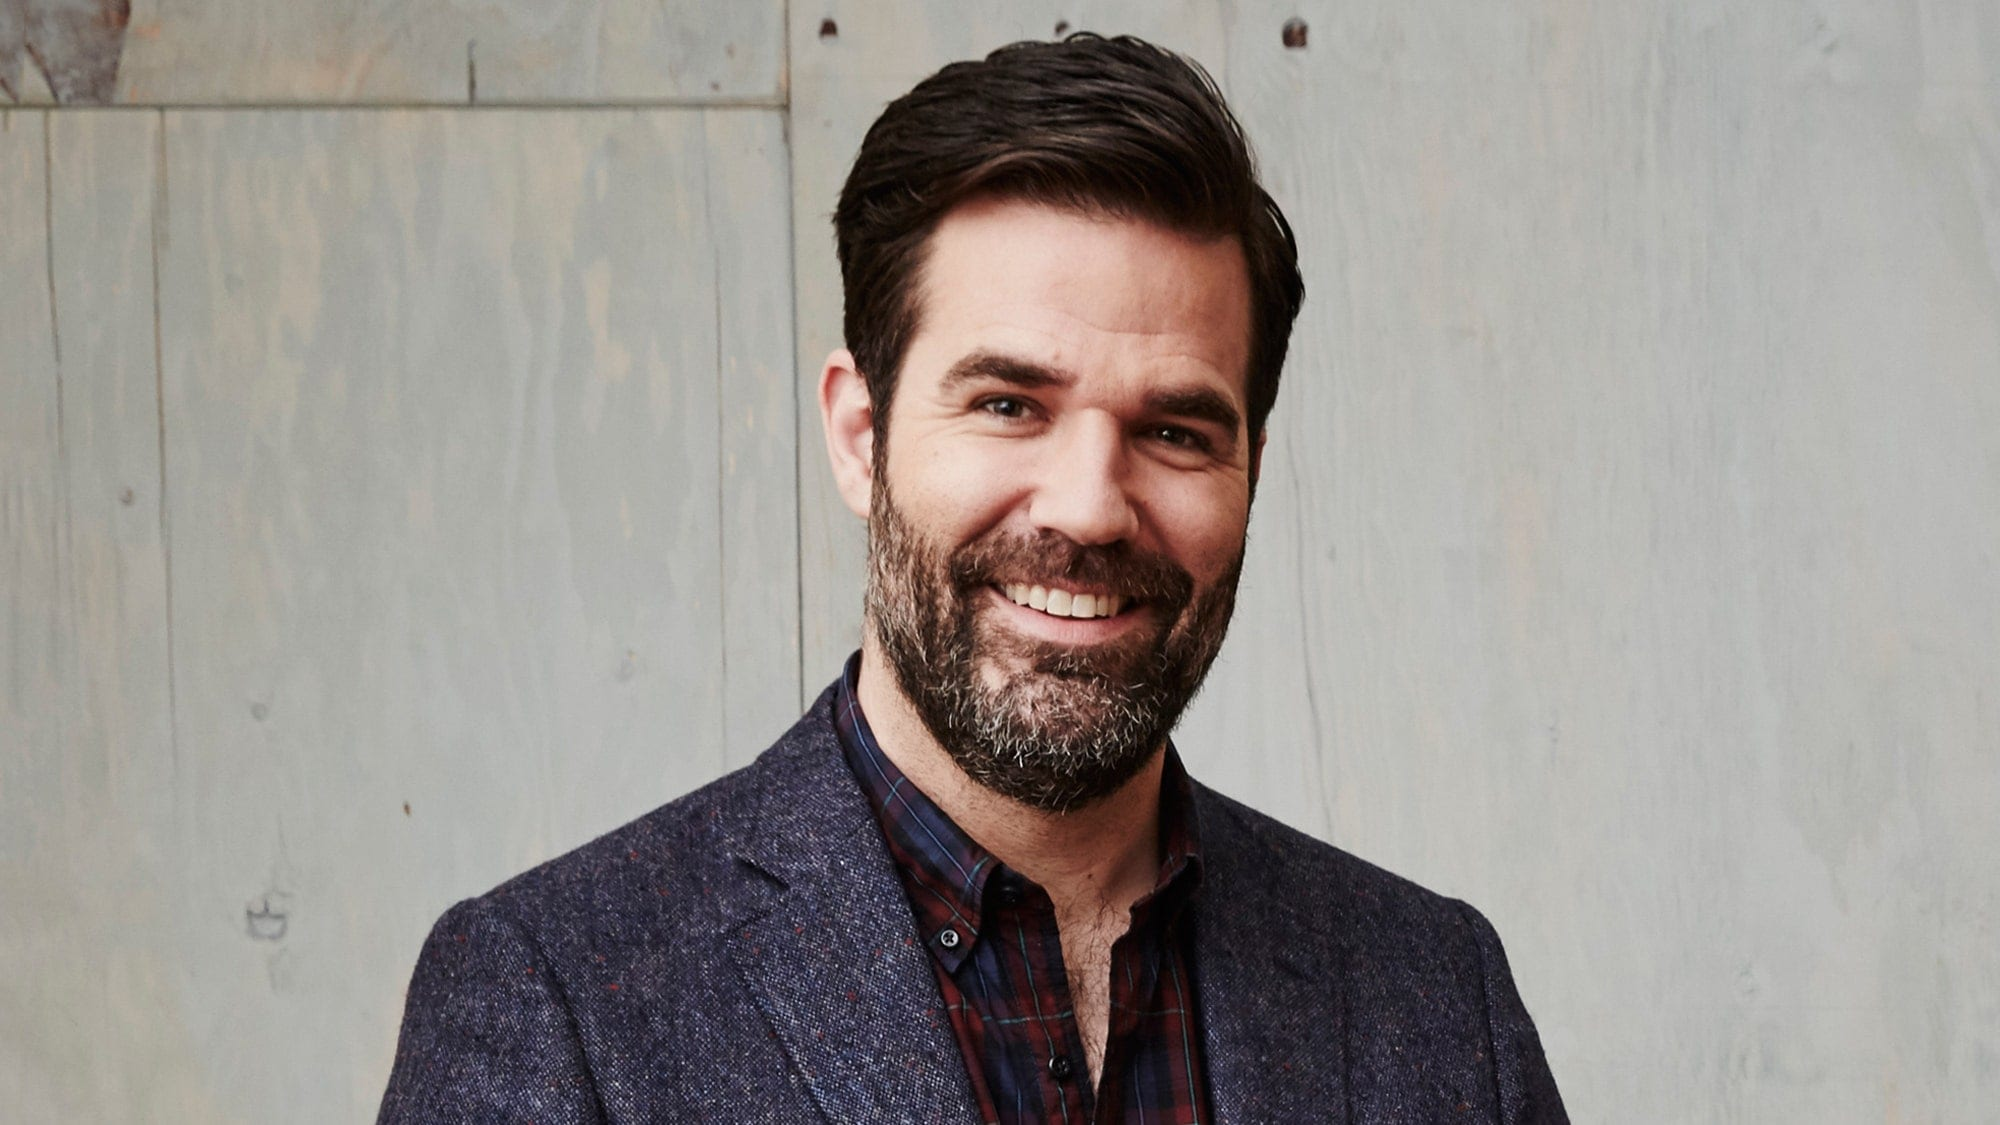 The Man Who Fell to Earth Rob Delaney